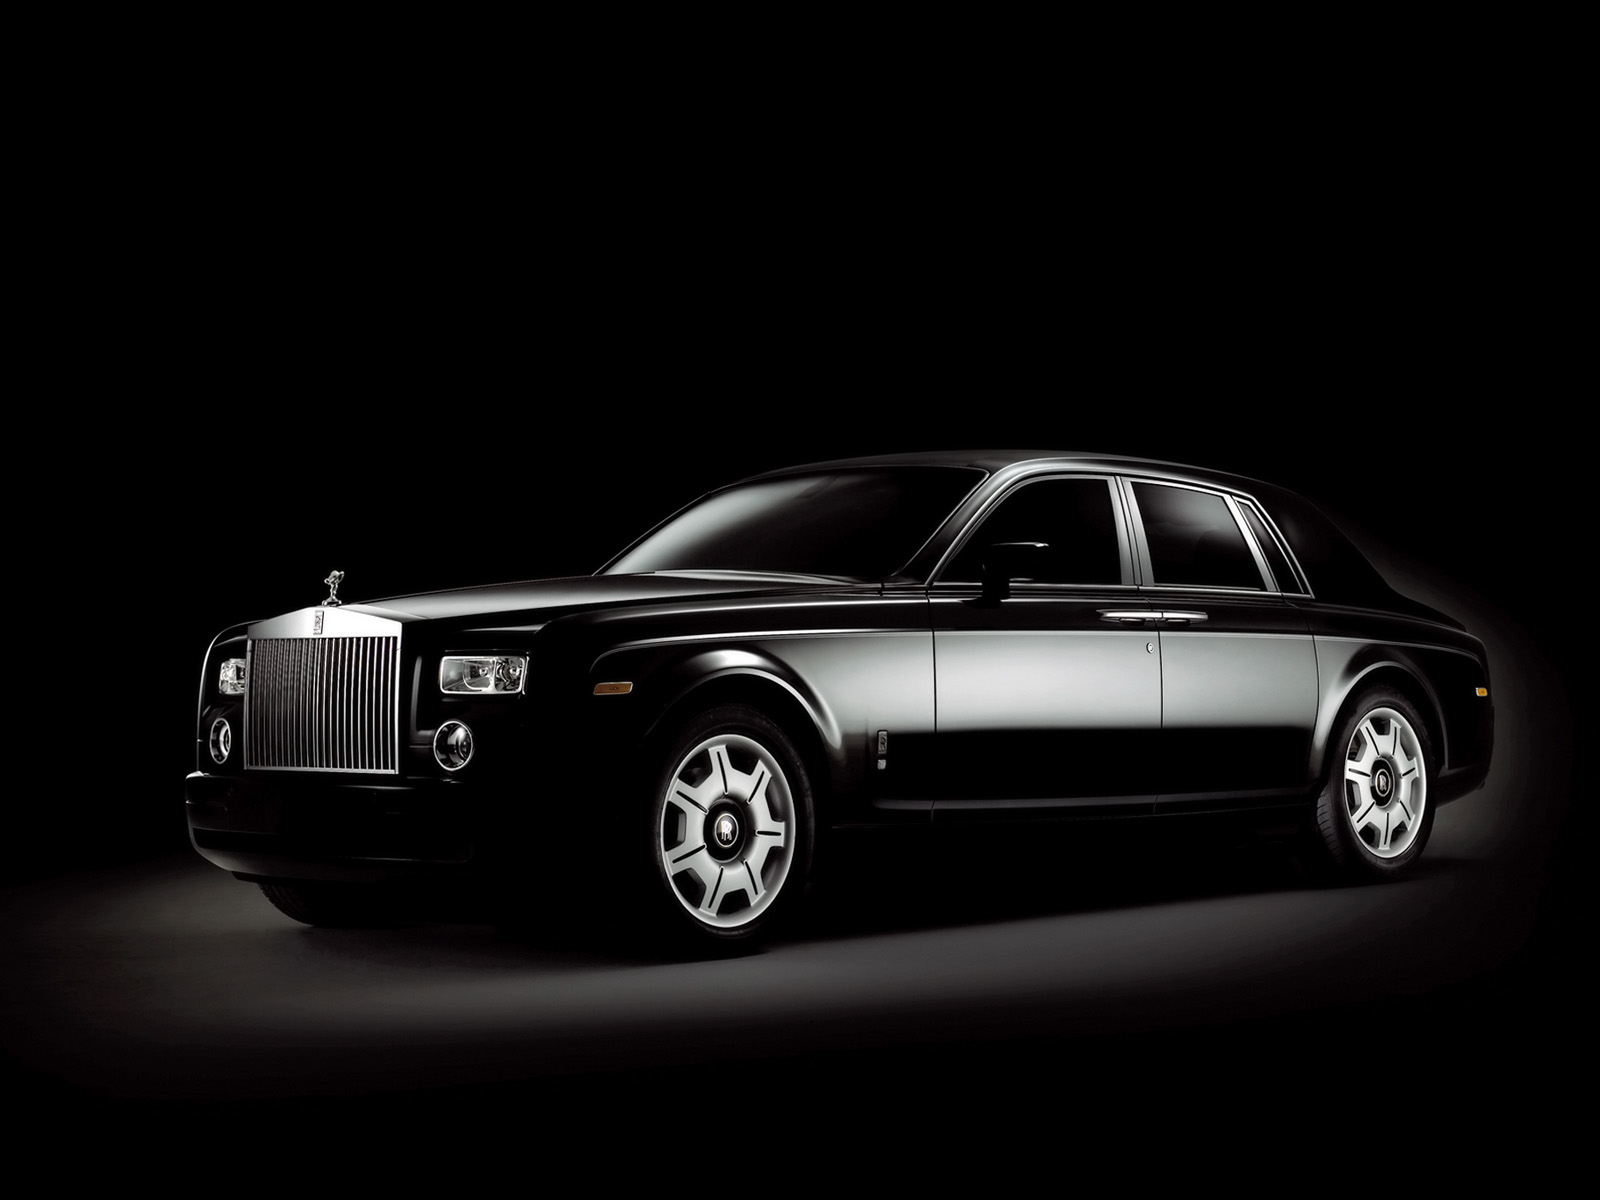 Rolls-Royce Phantom Black photo #1